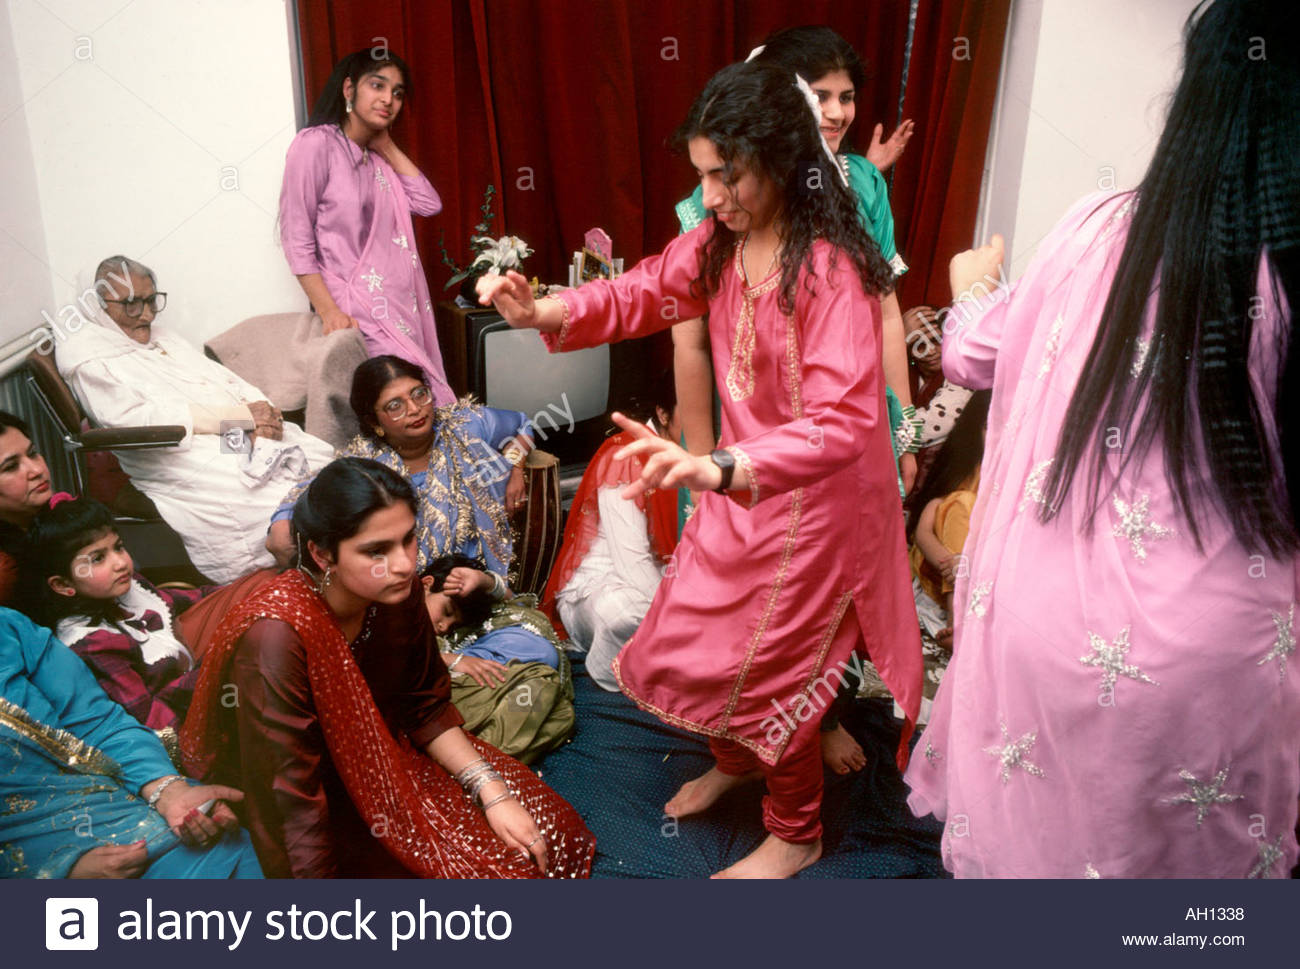 asian women dancing in living room at wedding reception at home uk